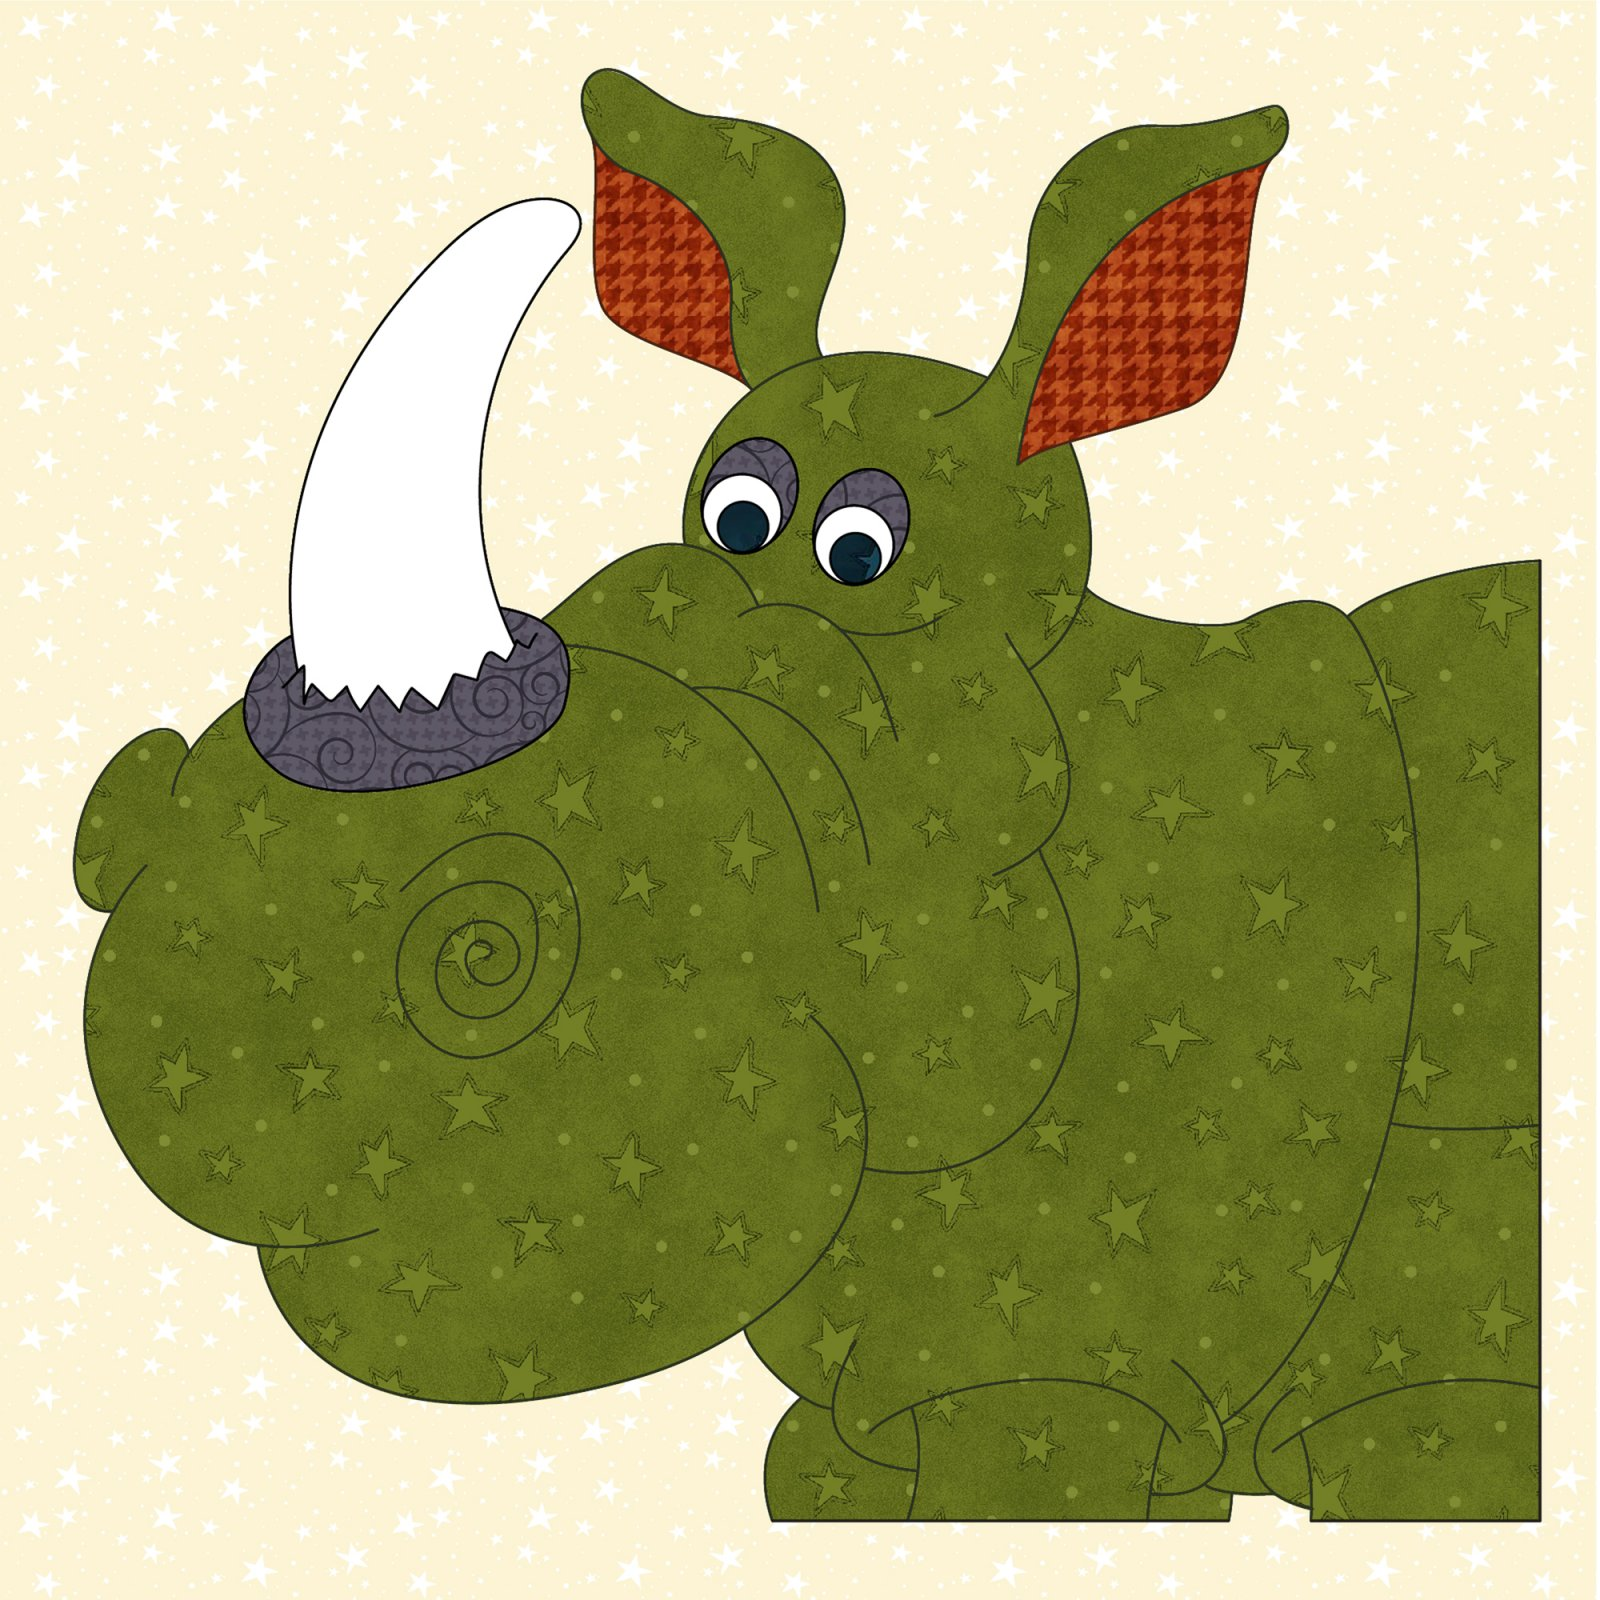 Rhino Precut Prefused Applique Kit